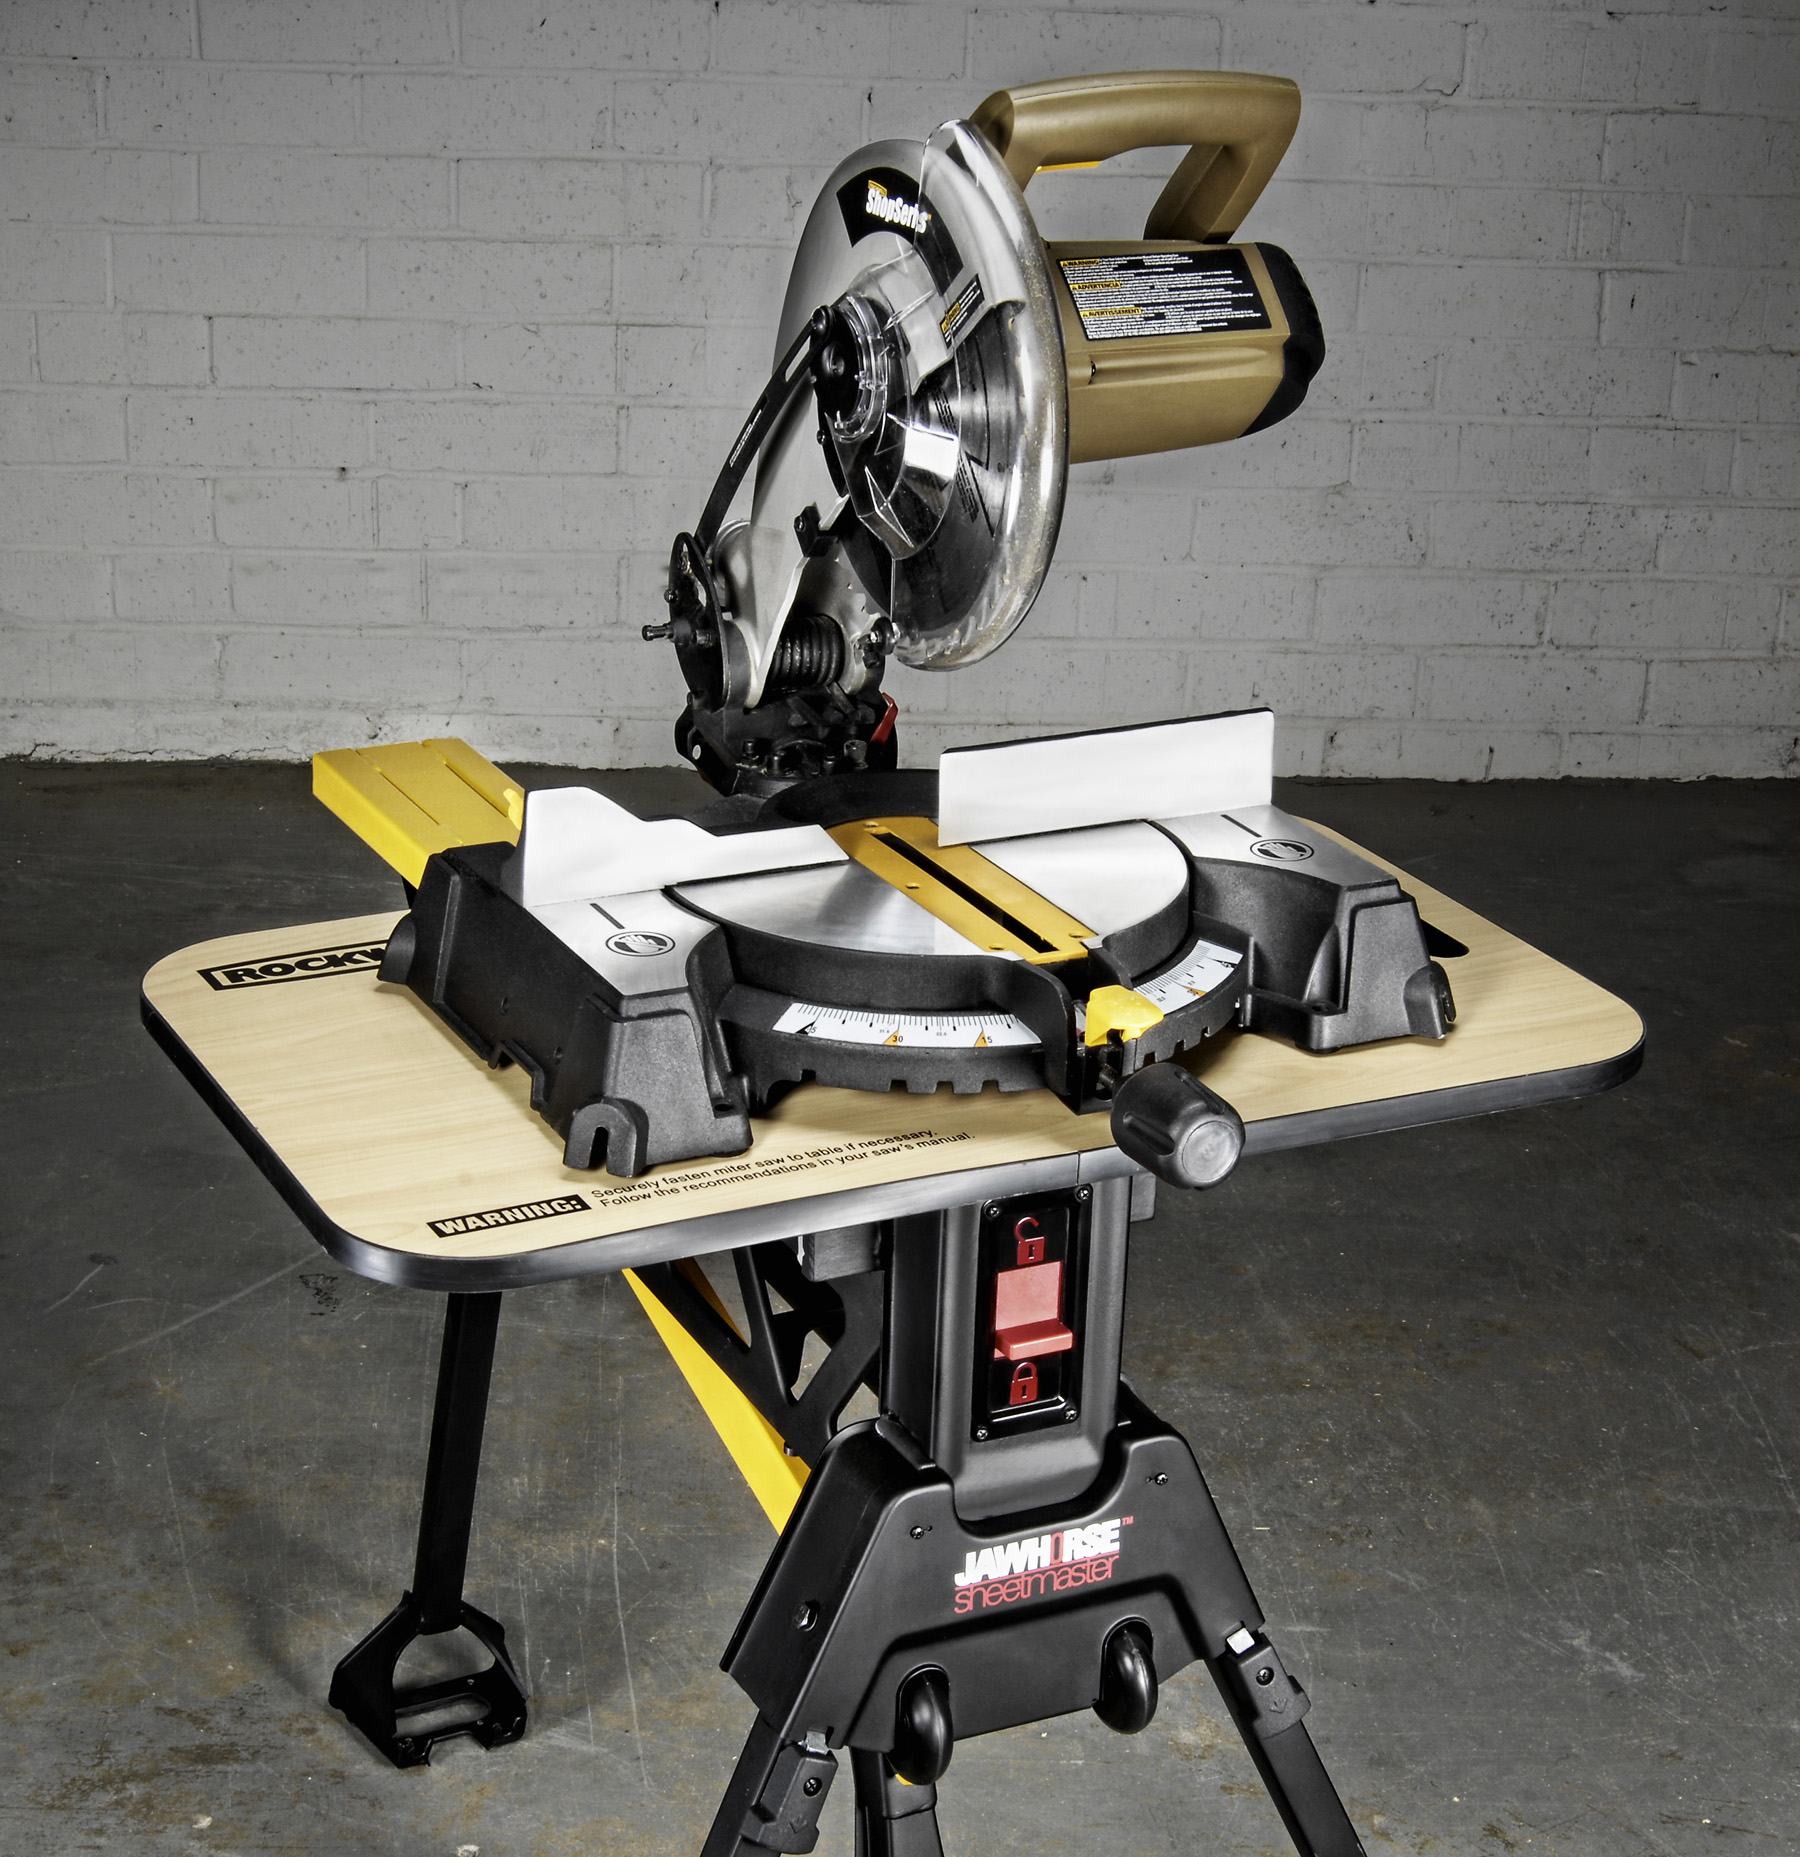 New Jawhorse Sheetmaster Rules As Rockwell S Latest Hands